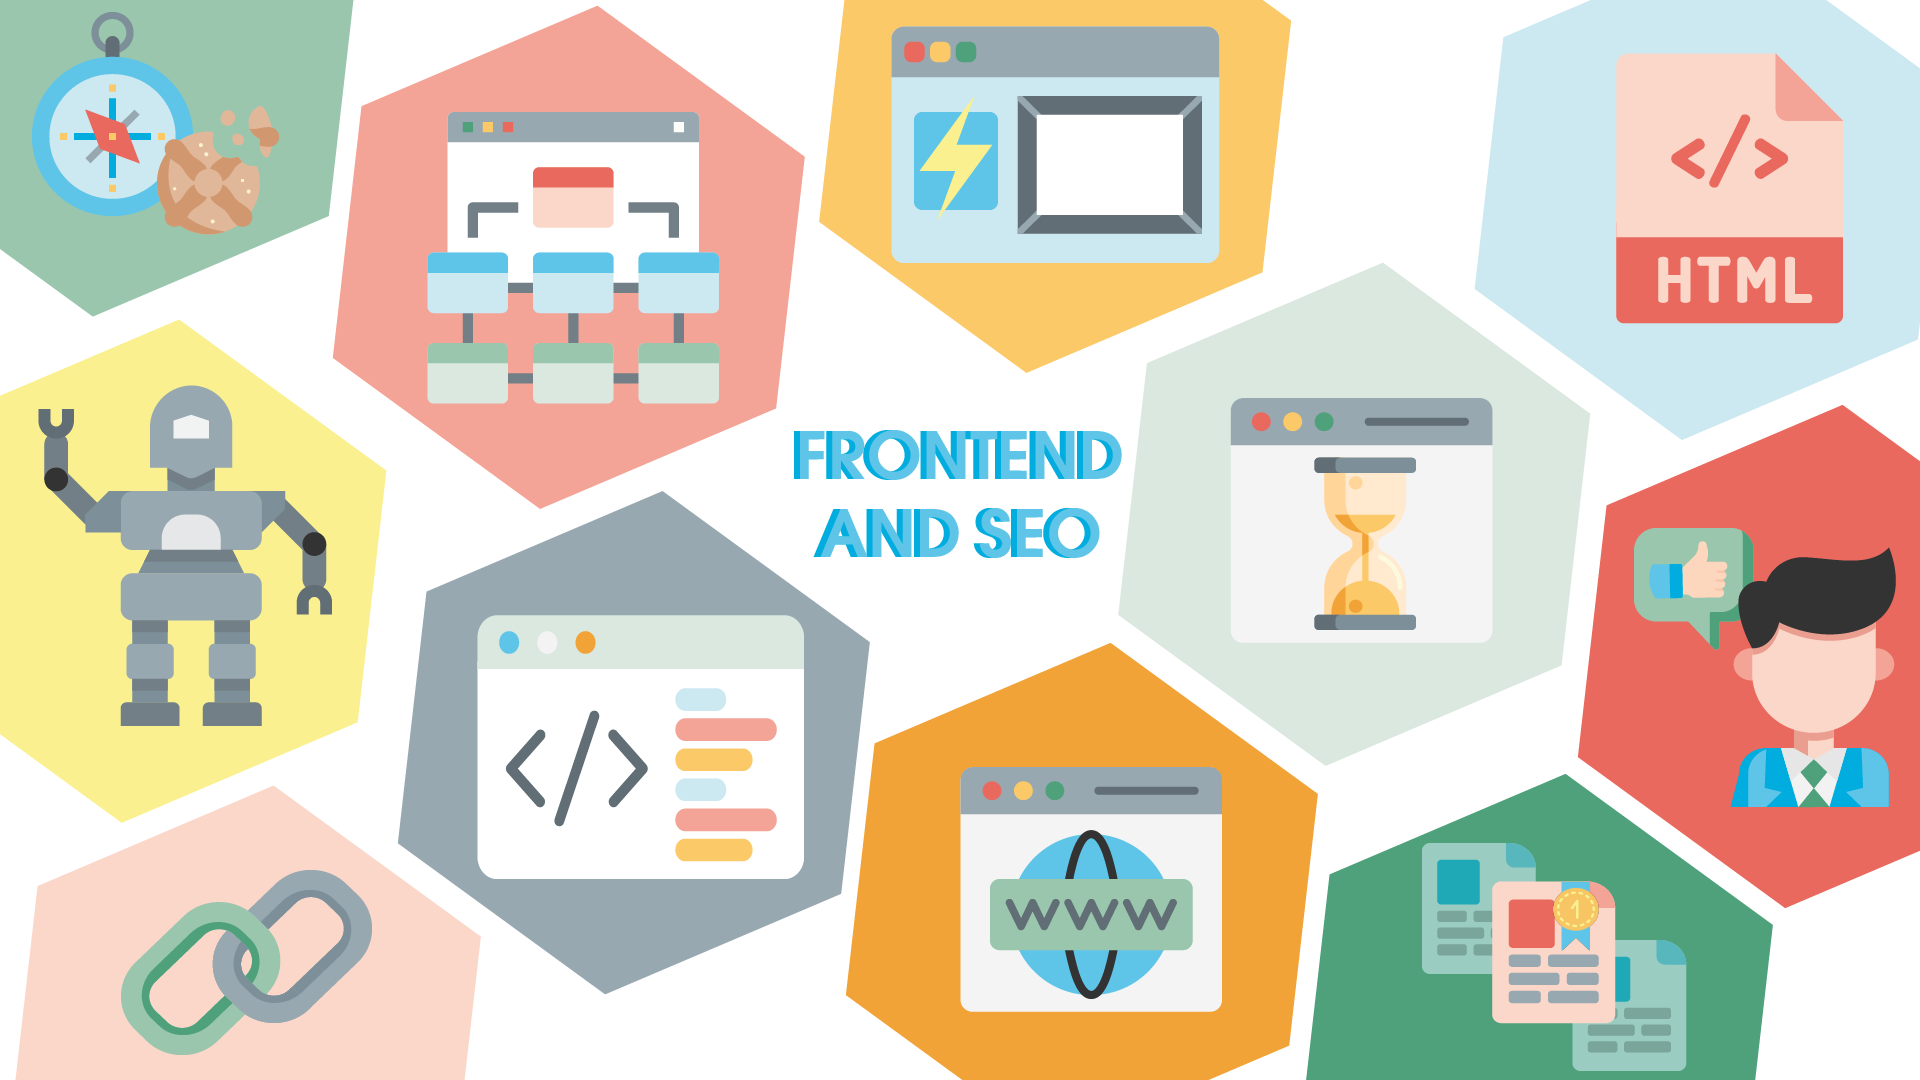 Frontend and SEO - the factors at a glance